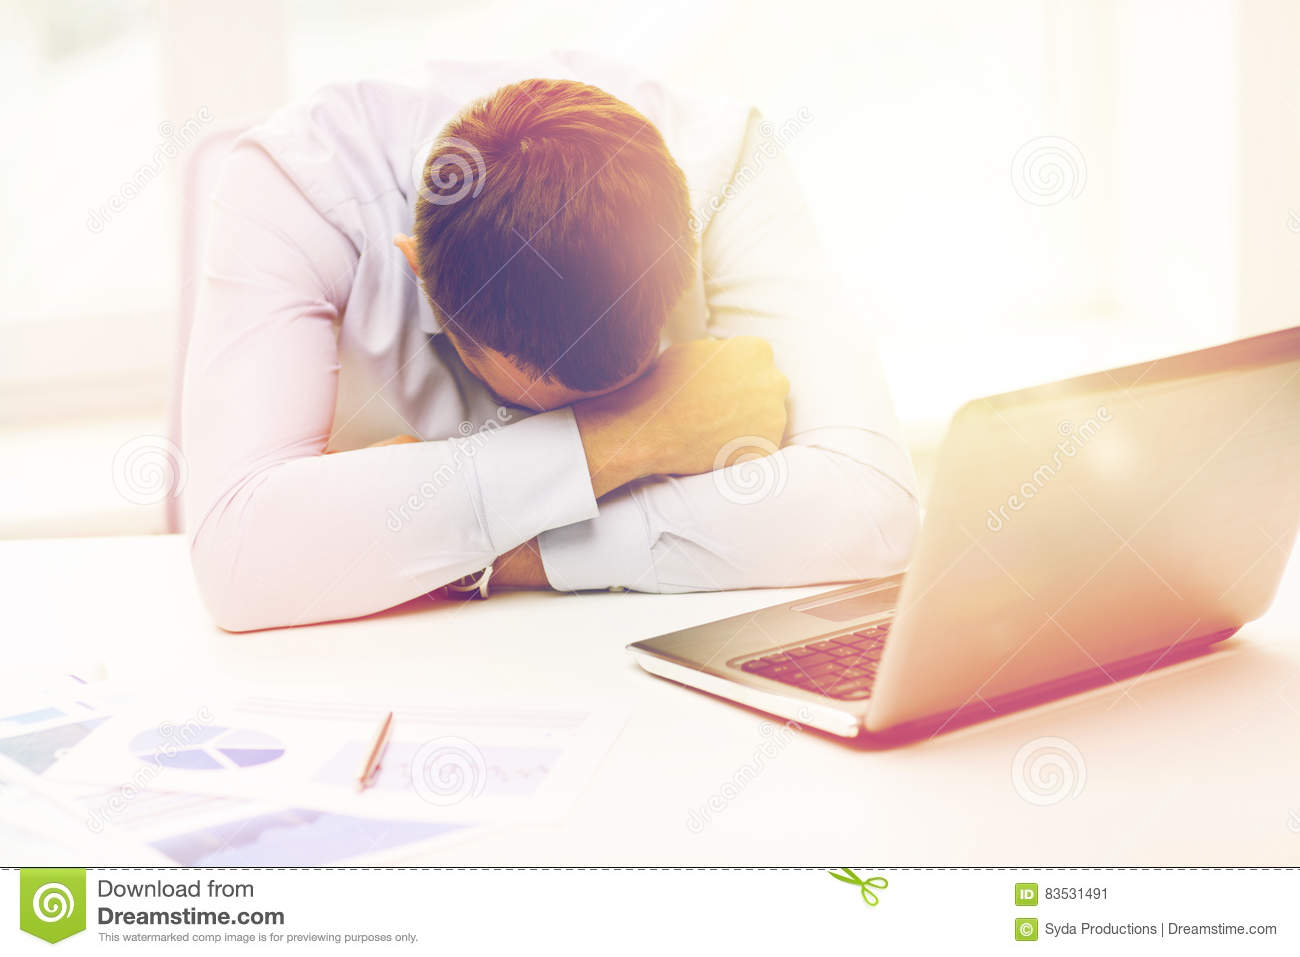 failing business essay In this activity, students will explore how they measure success and failure in themselves and in others then they will write an essay on this topic.